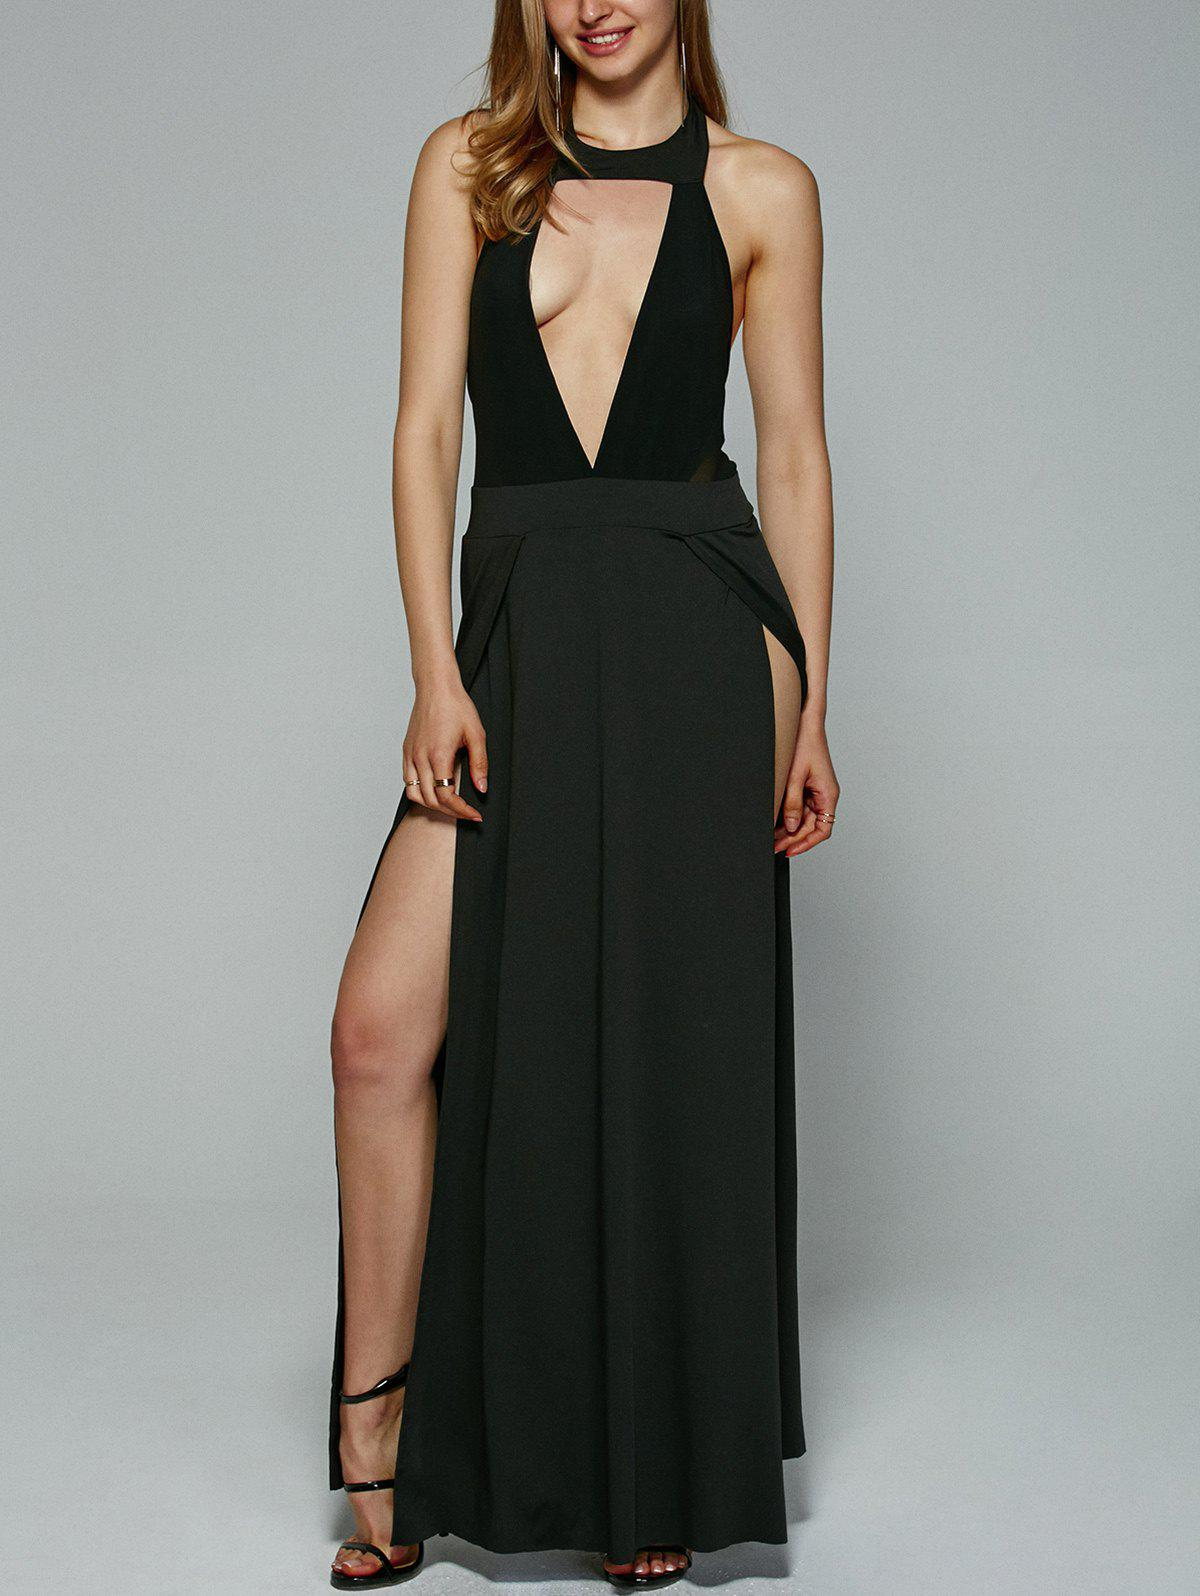 Alluring Backless Hollow Out High Slit Maxi Dress For Women 191848504